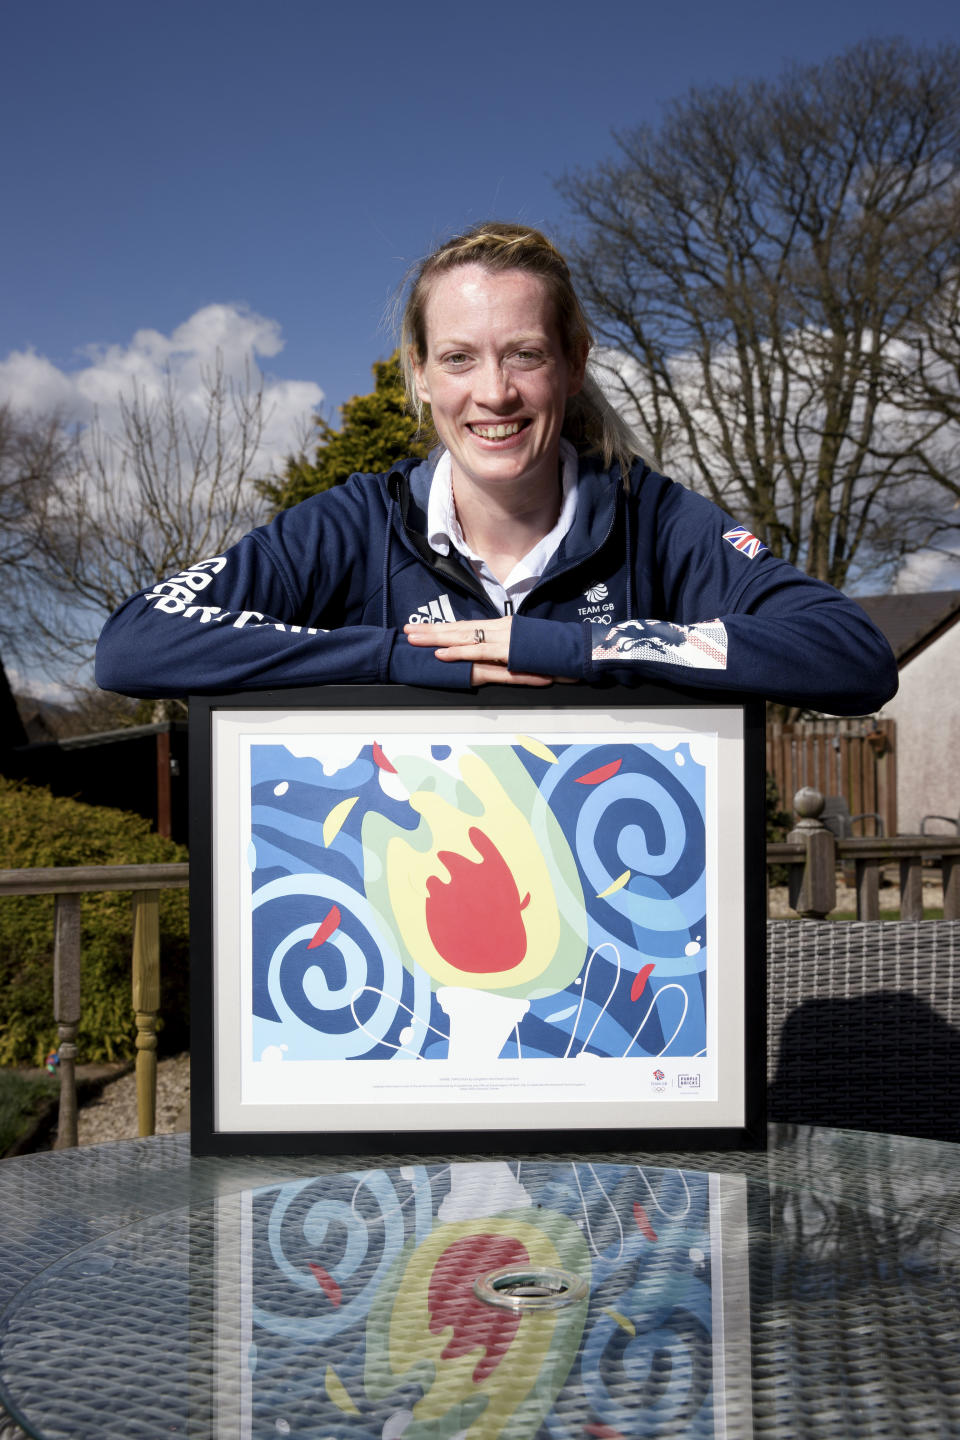 Delighted Doyle was presented with a specially commissioned piece of artwork designed to rally support for Team GB athletes